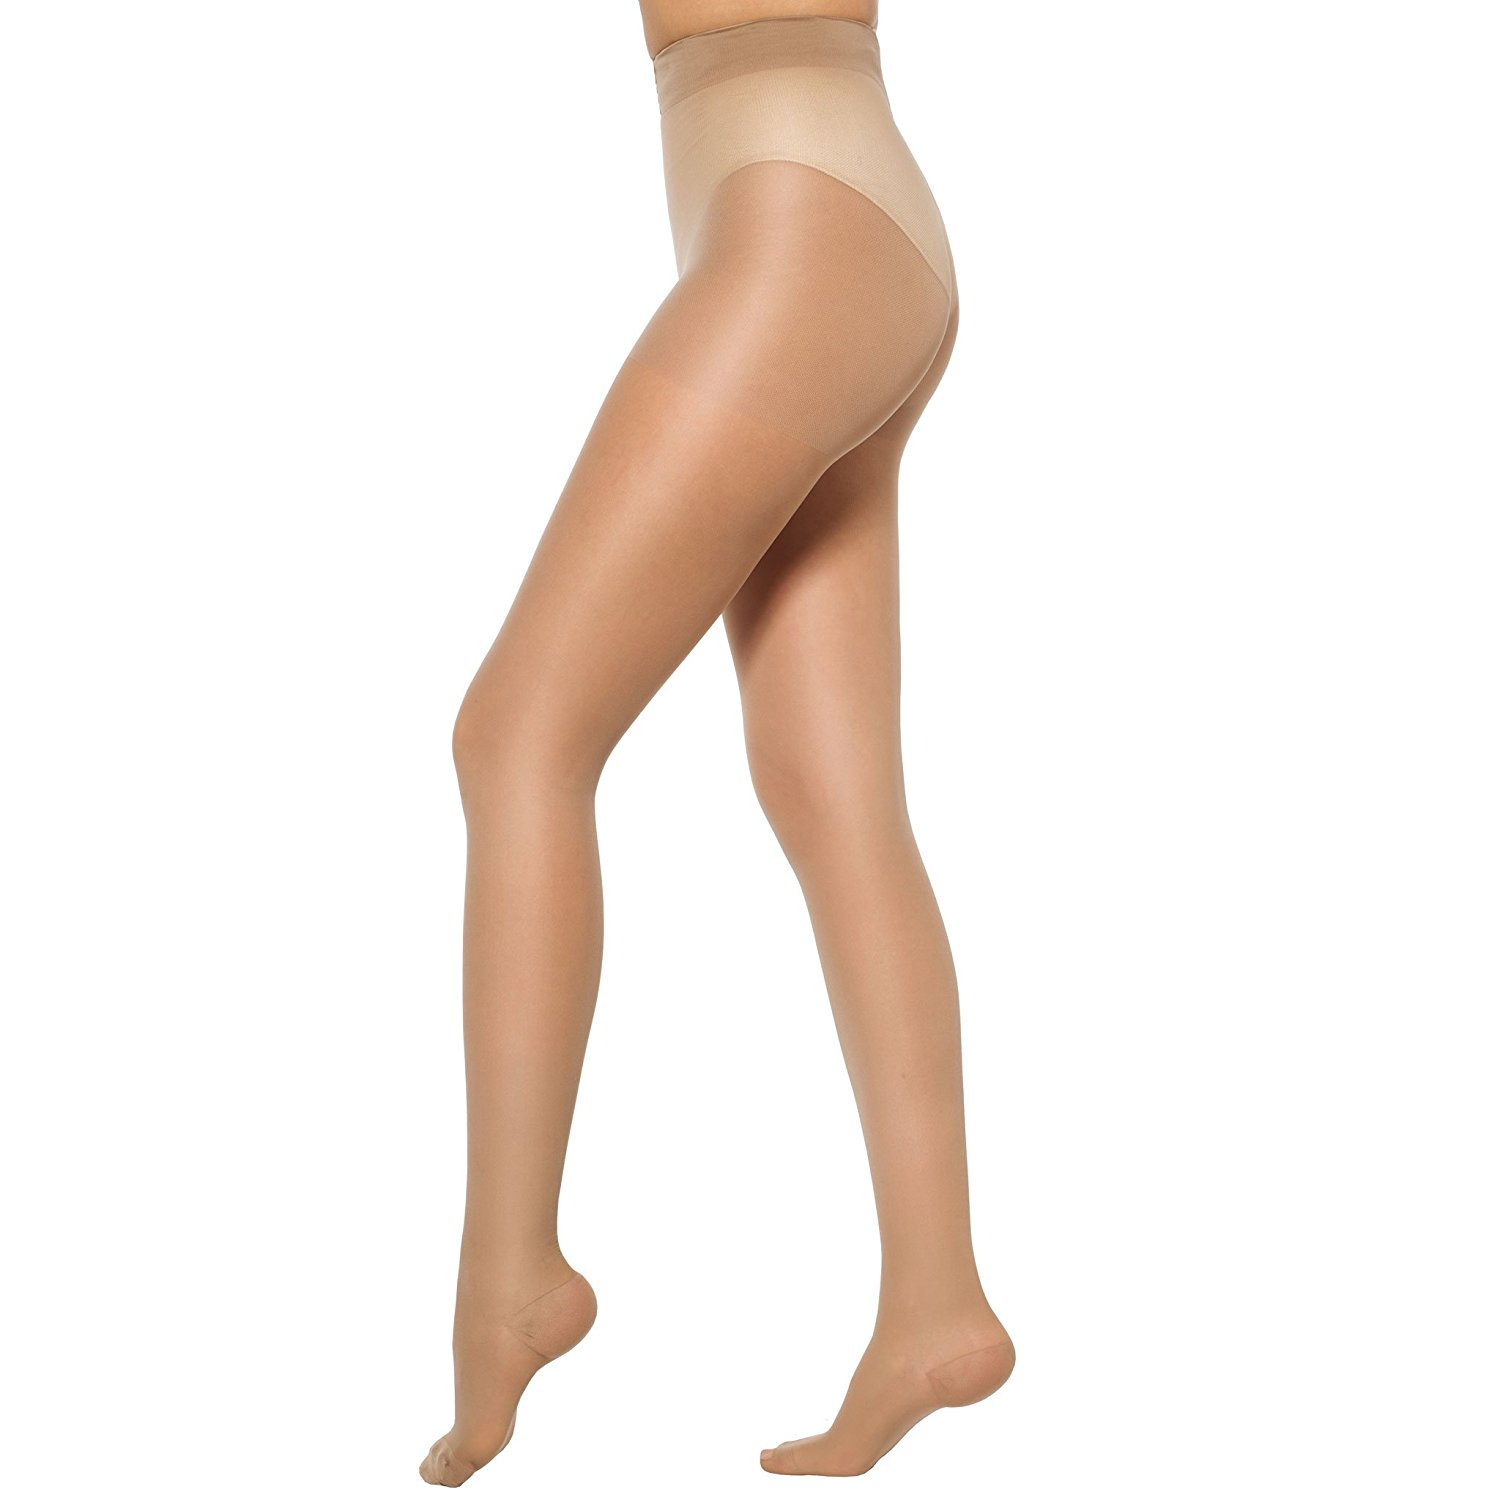 2757f897086 Get Quotations · Healthweir Graduated Compression Pantyhose (18-22mmHg) -  Made in Italy - Sheer Hosiery